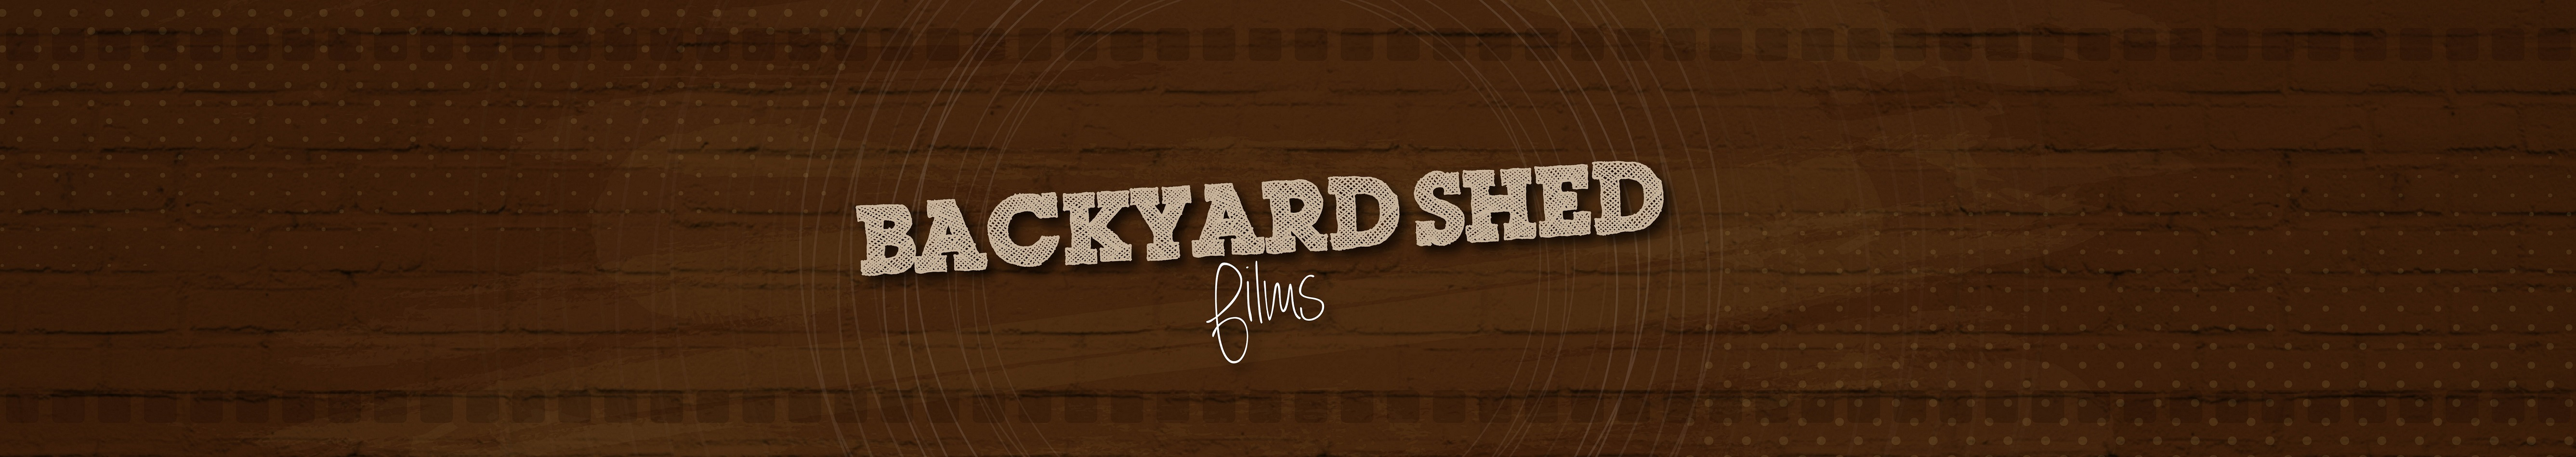 Let's Rob the Cheese Shop | Backyard Shed Films